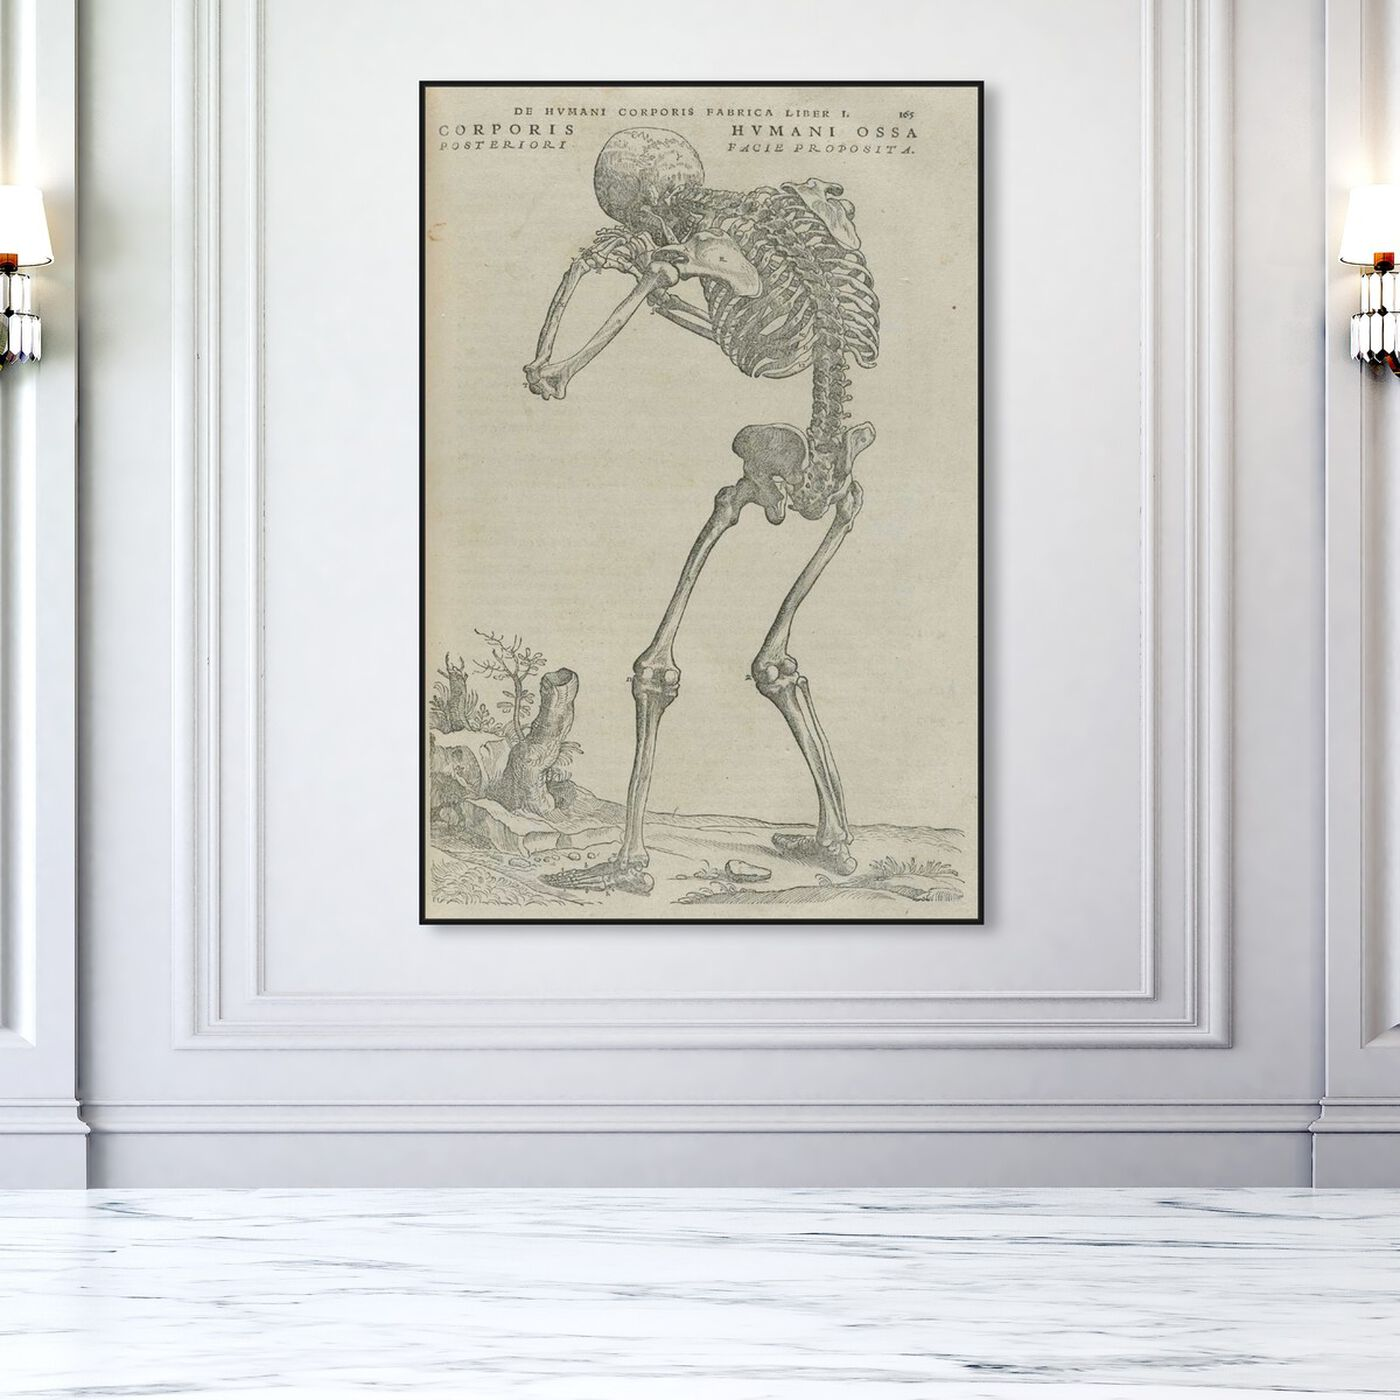 Hanging view of Vesalius VI - The Art Cabinet featuring classic and figurative and classical figures art.